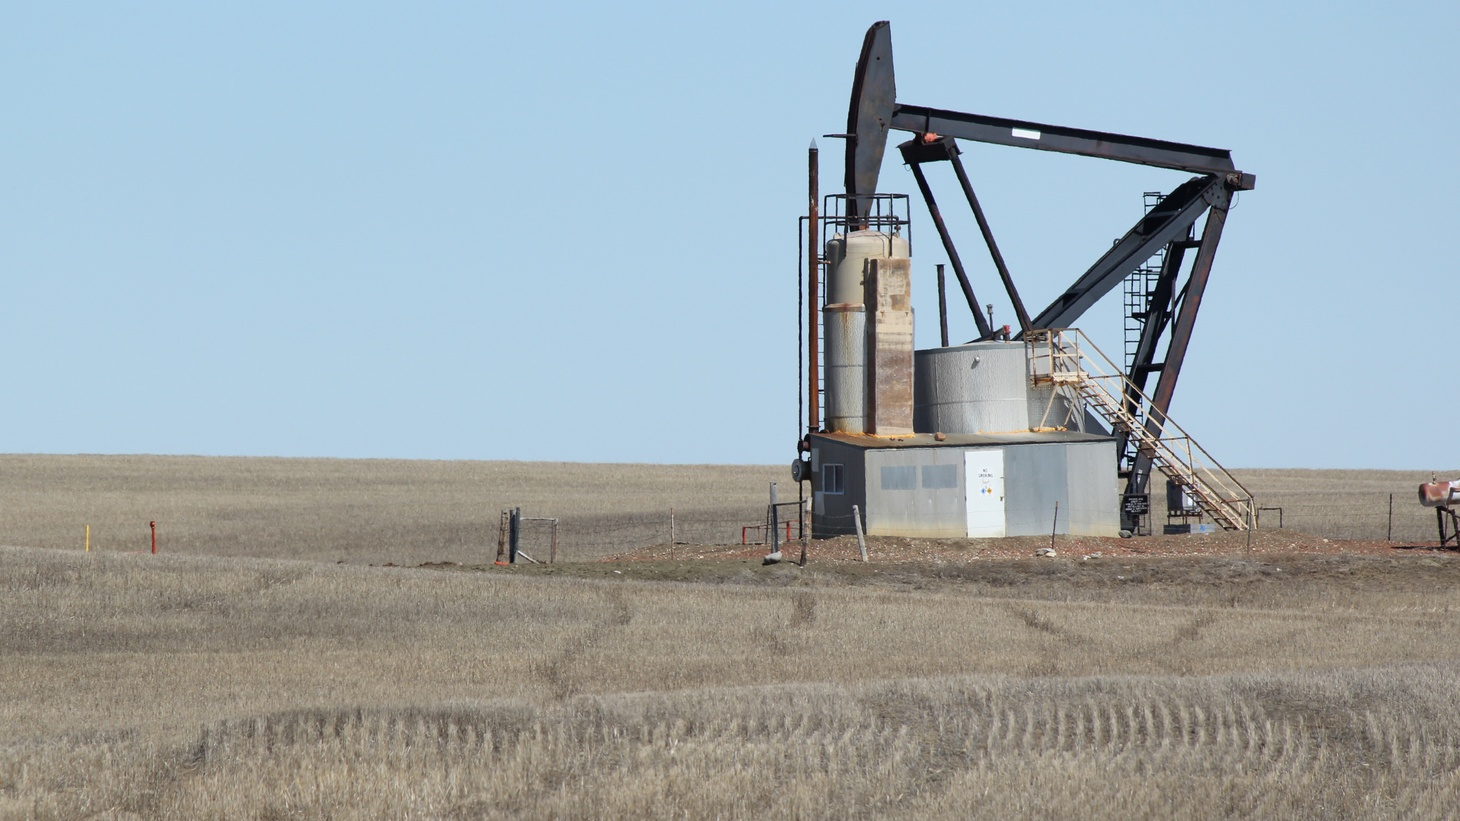 New drilling techniques have made the US an oil exporter again: good for the economy; bad for the environment—and a nightmare for local culture. The sleepy town of Williston, North Dakota is one overcrowded boomtown with skyrocketing rents and new levels of violent crime.